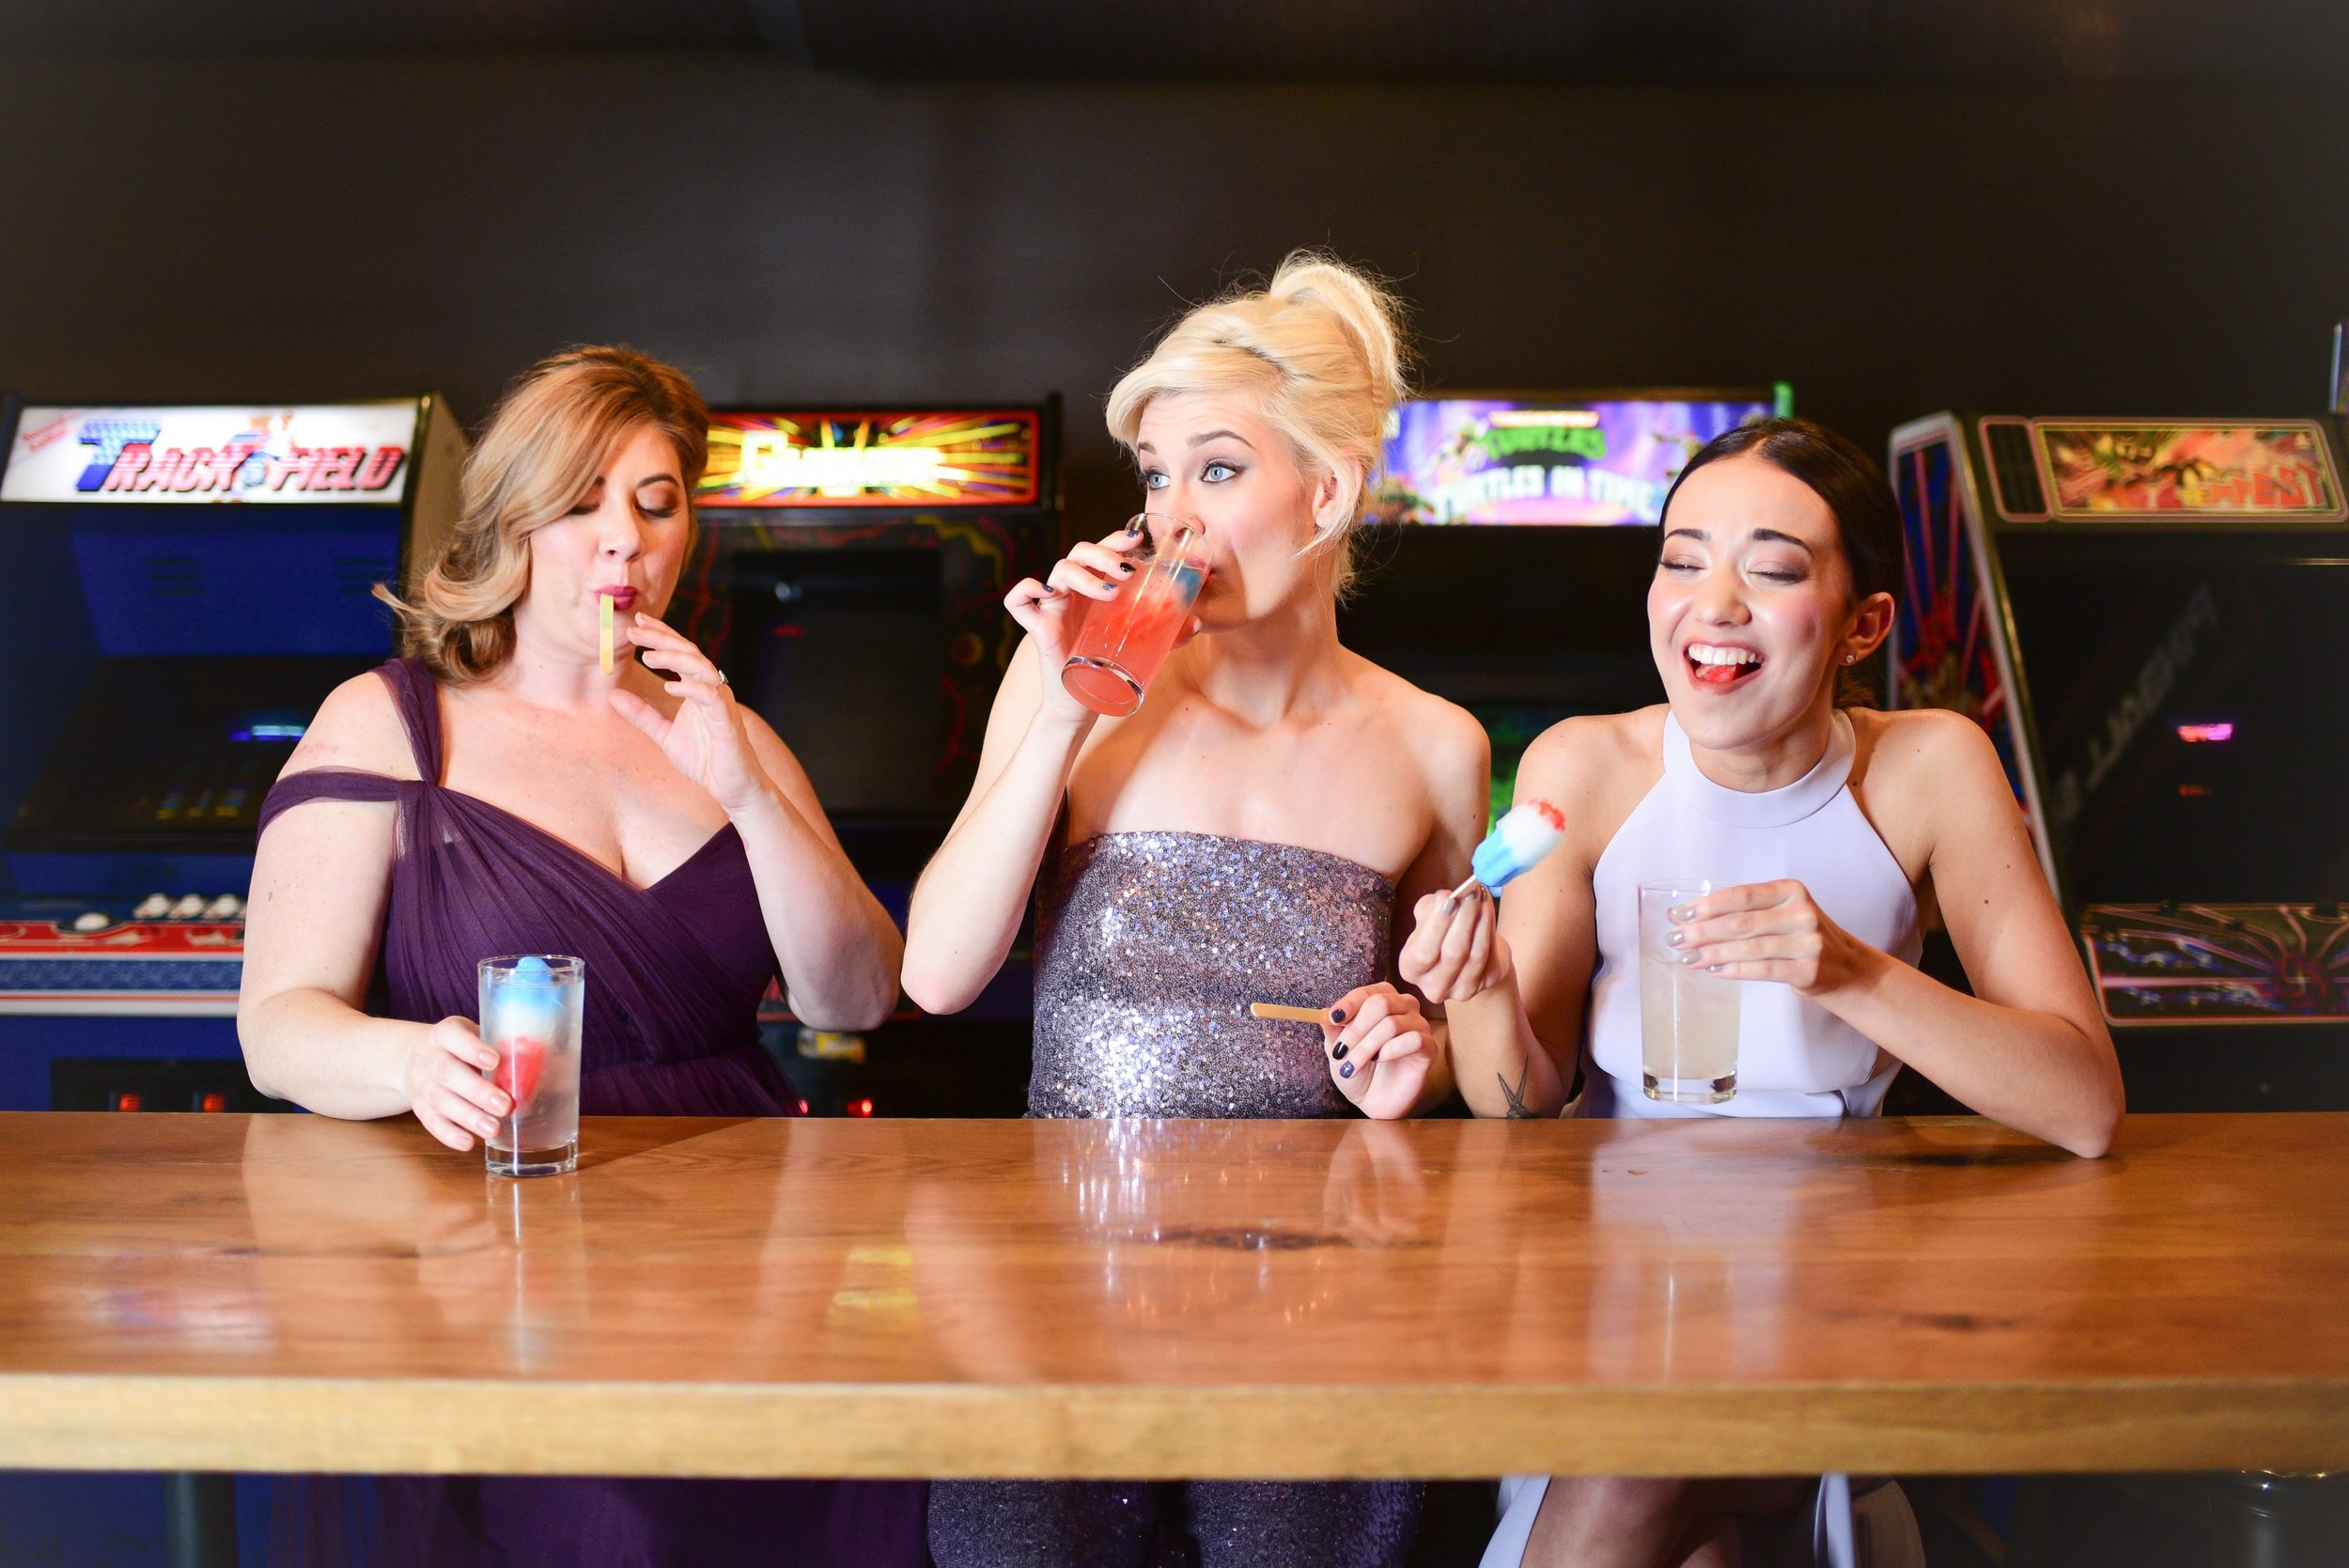 16-Bit Bar and Arcade styled shoot in Columbus Ohio featuring dresses by Gilded Social